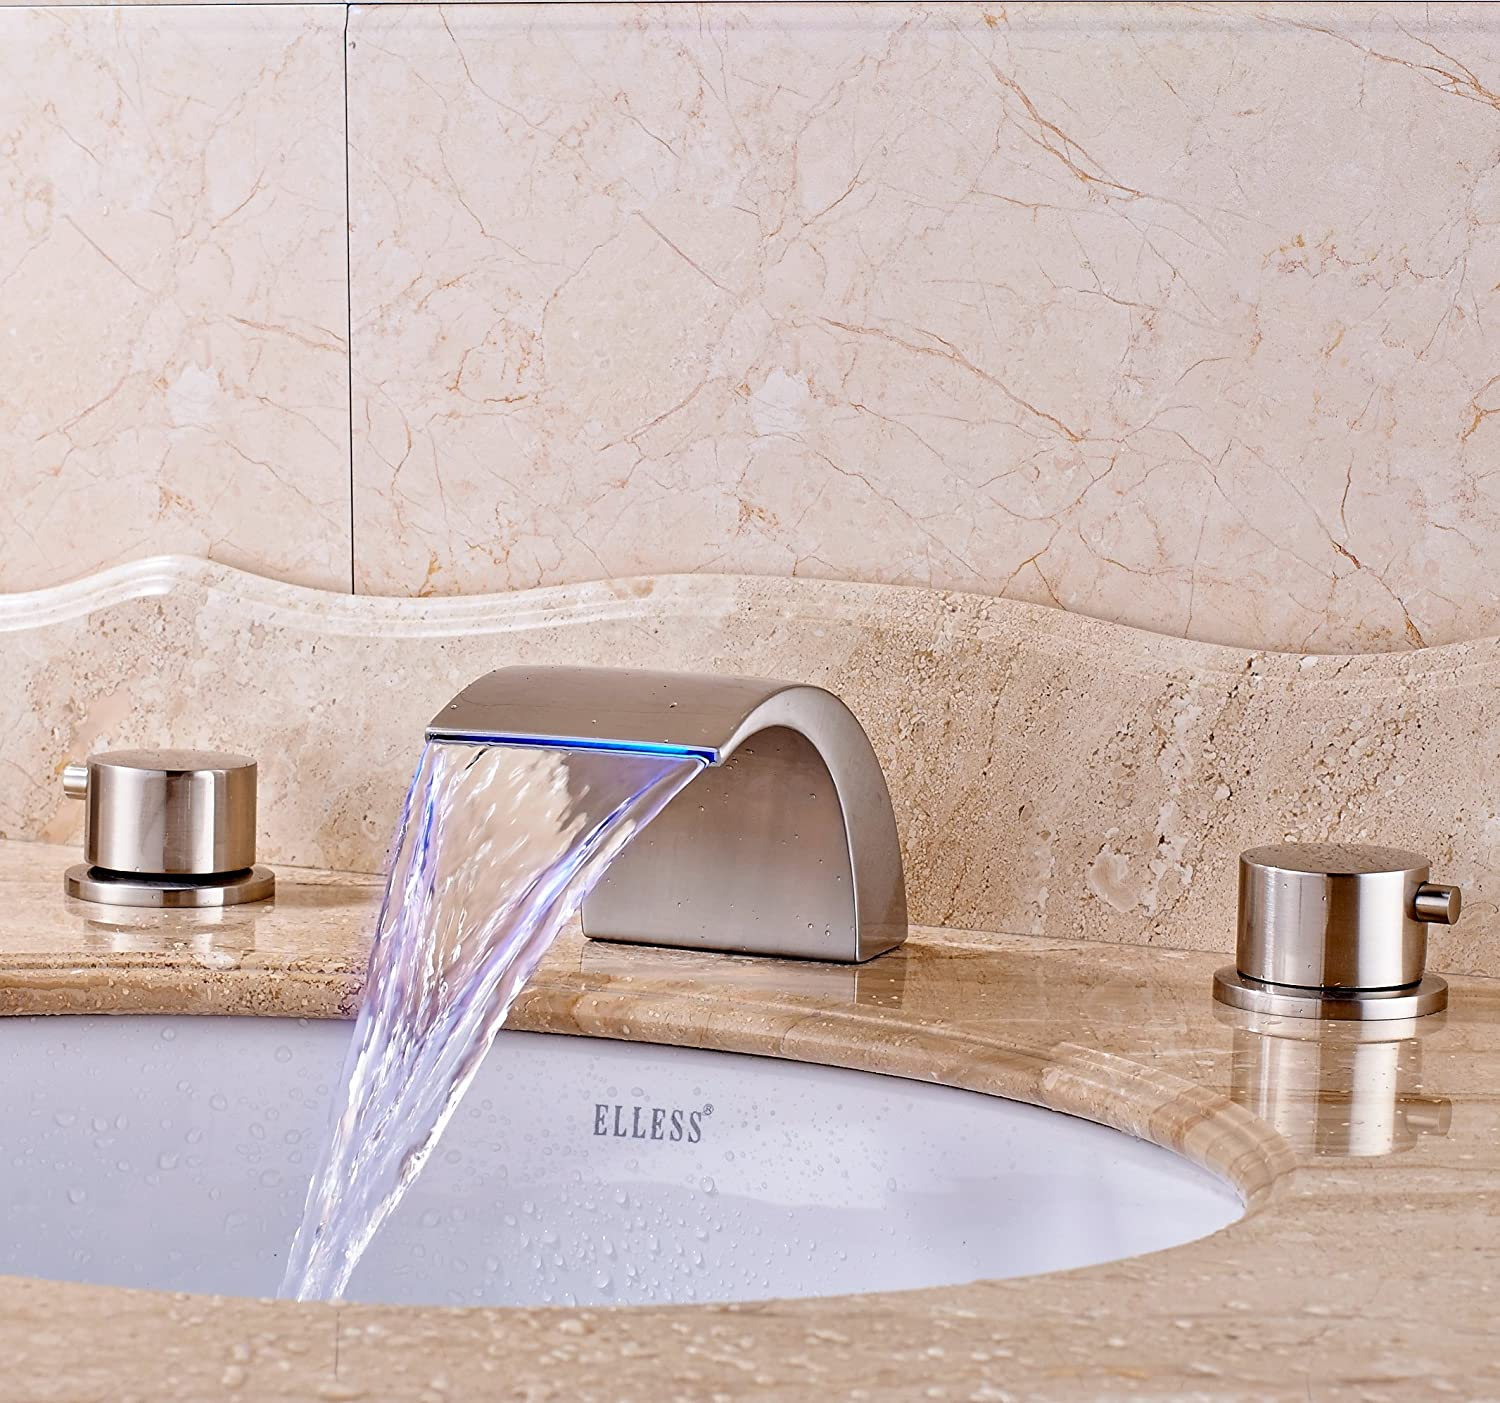 senlesen widespread led bathroom waterfall basin faucet dual